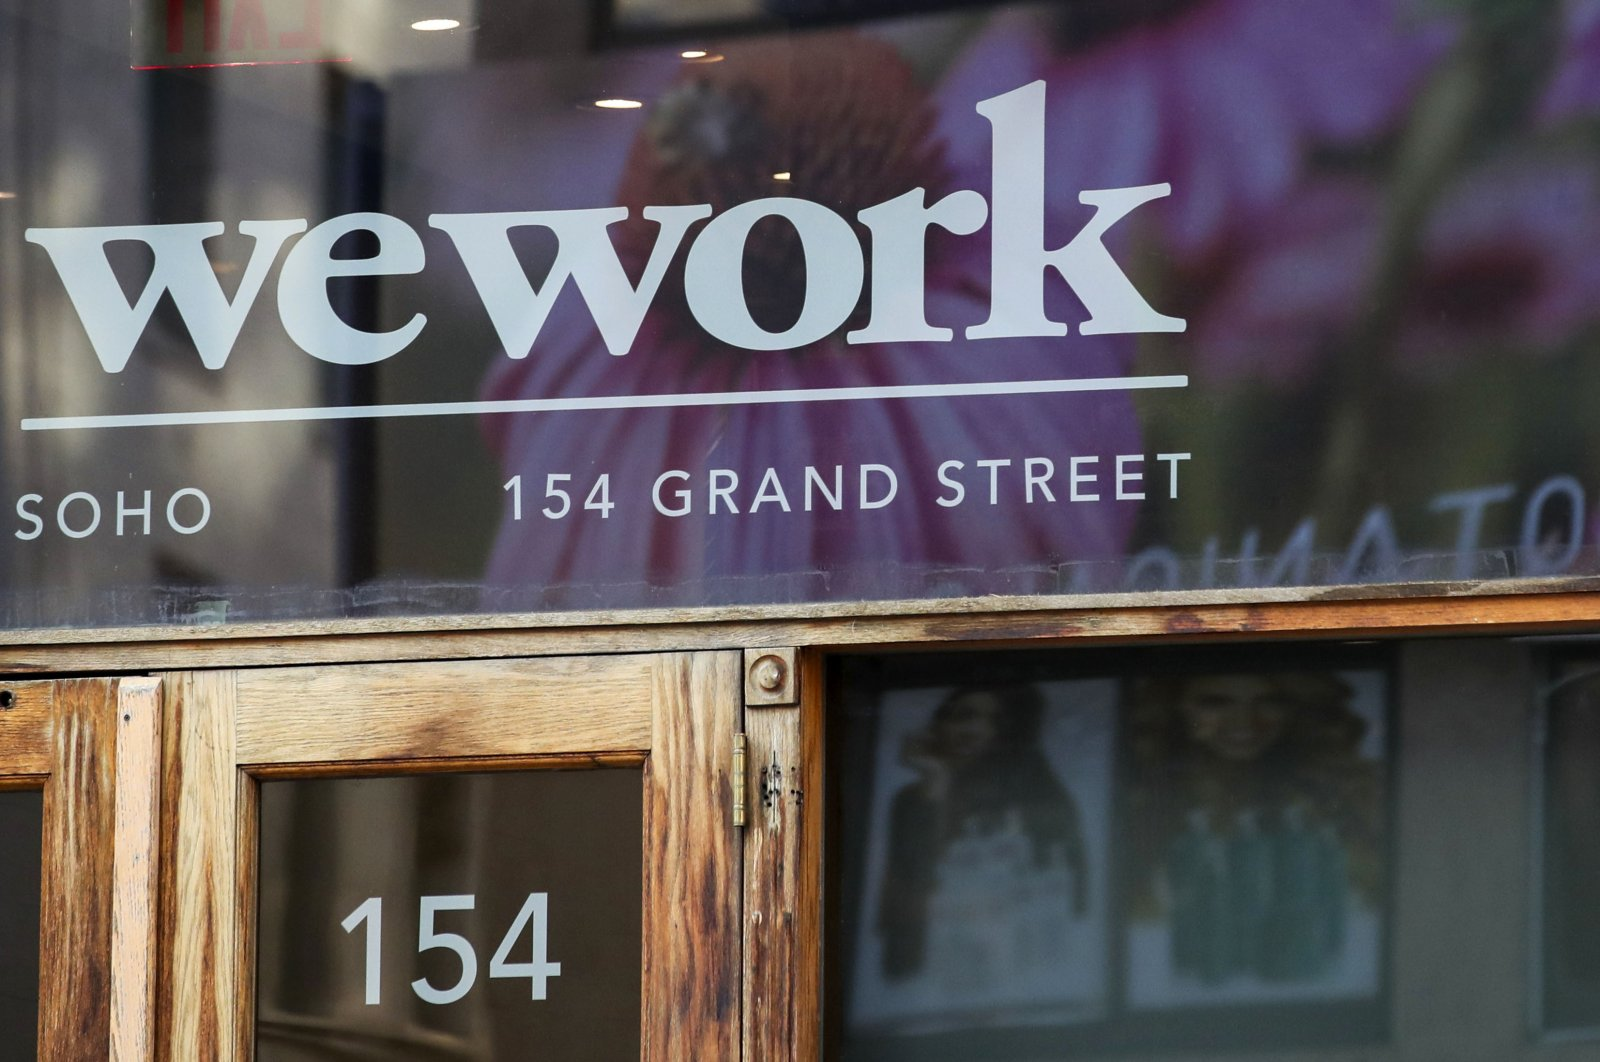 This Oct. 15, 2019, file photo shows a WeWork logo at the entrance to one of their office spaces in the SoHo neighborhood of New York. (AP Photo)